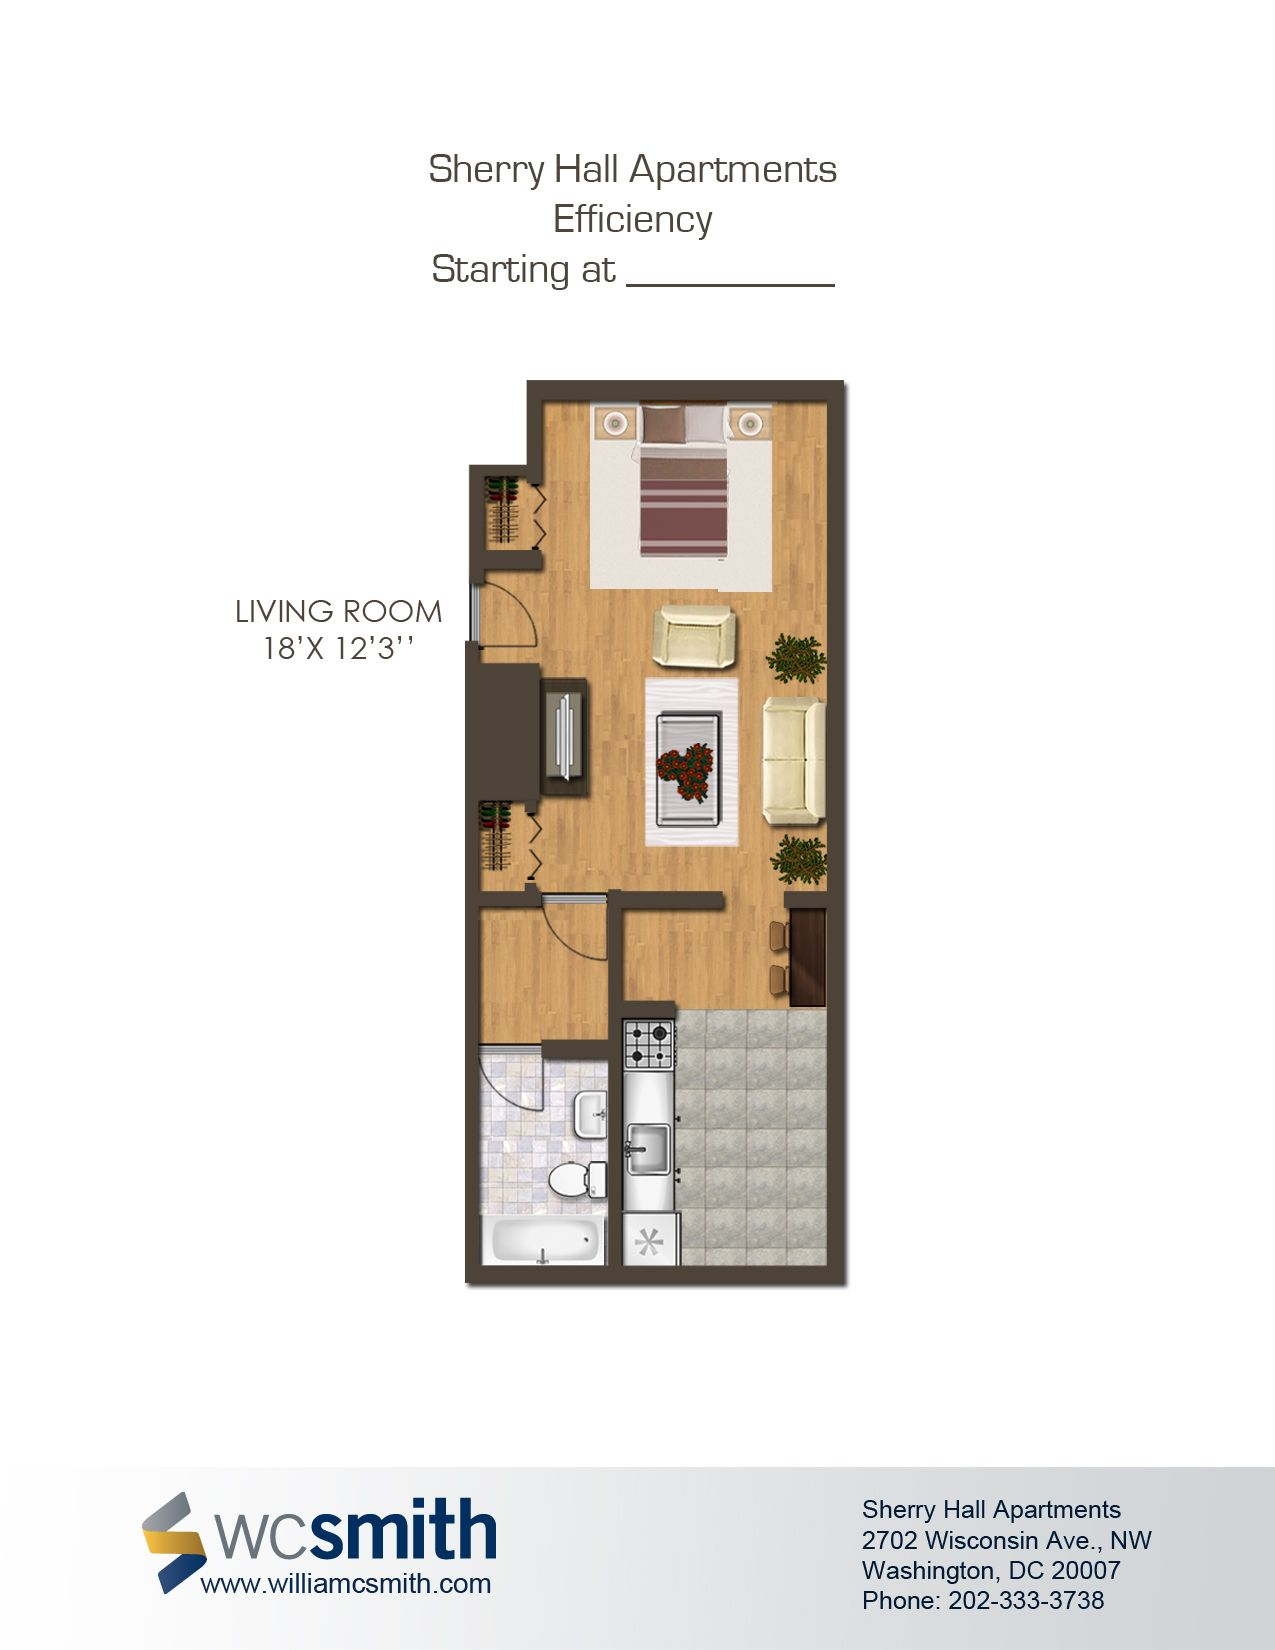 Sherry hall home the basement apartment pinterest for Efficiency floor plans